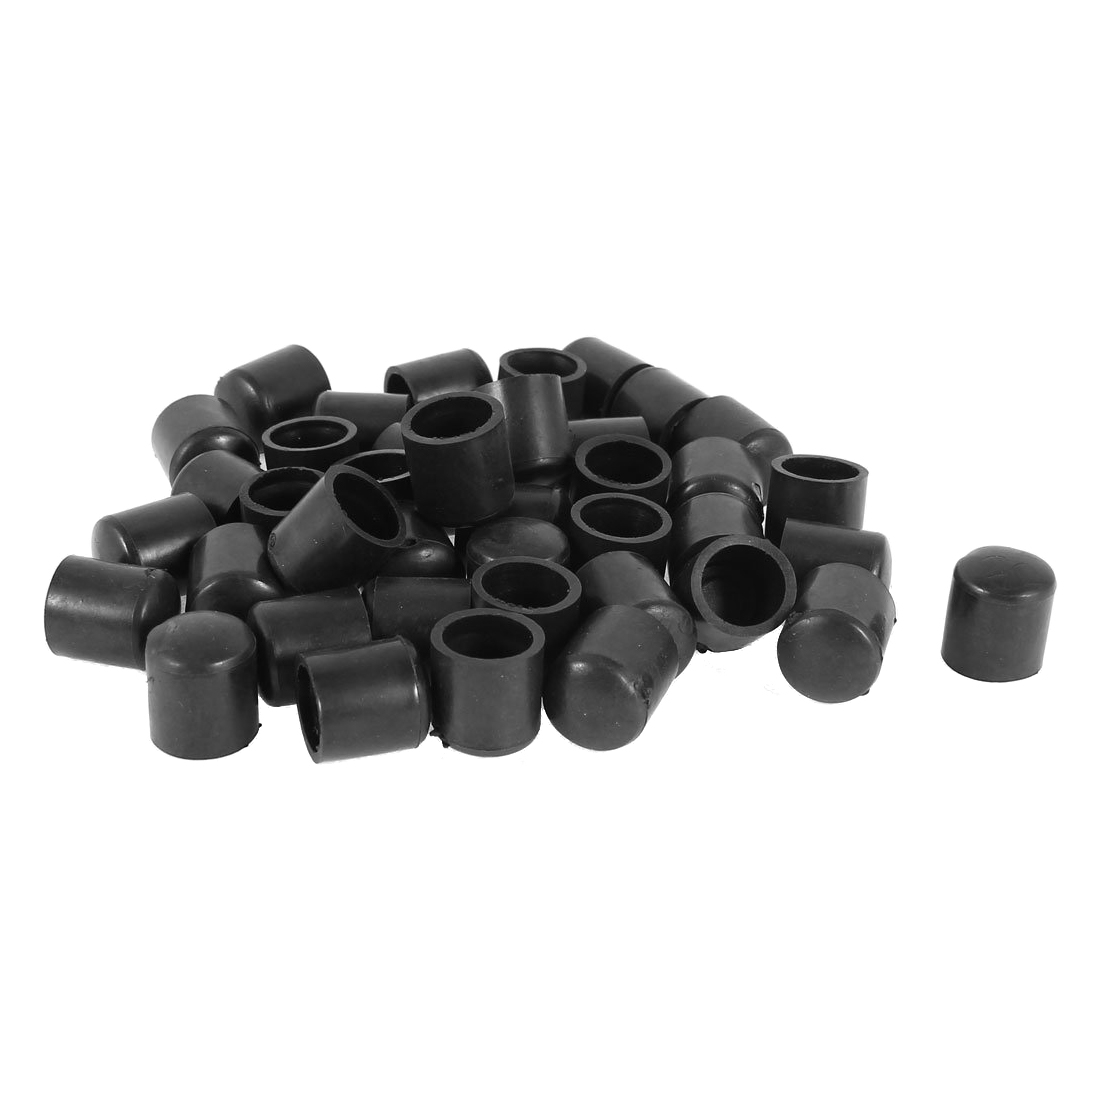 Rubber caps 40-piece black rubber tube ends 10mm roundRubber caps 40-piece black rubber tube ends 10mm round